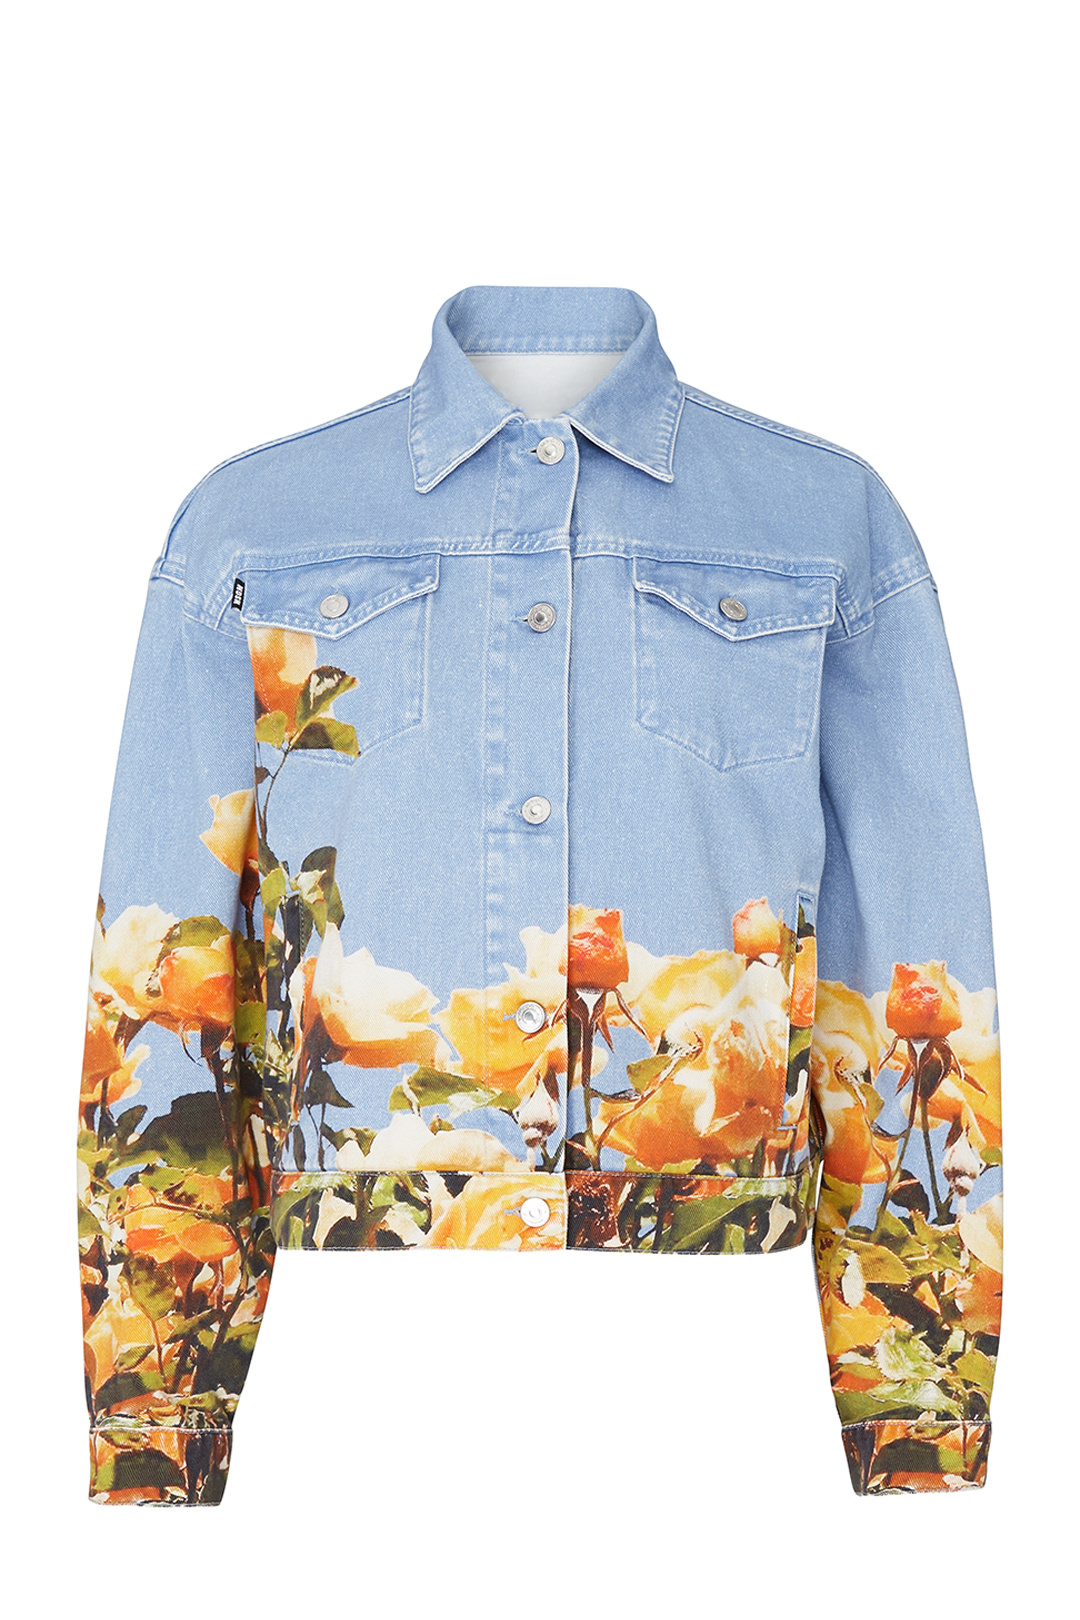 MSGM Blue Floral Denim Jacket - Dis cool. Plus the retail price is $915…so if spending nearly a grand on a statement jacket isn't really in the budget, RENT IT!